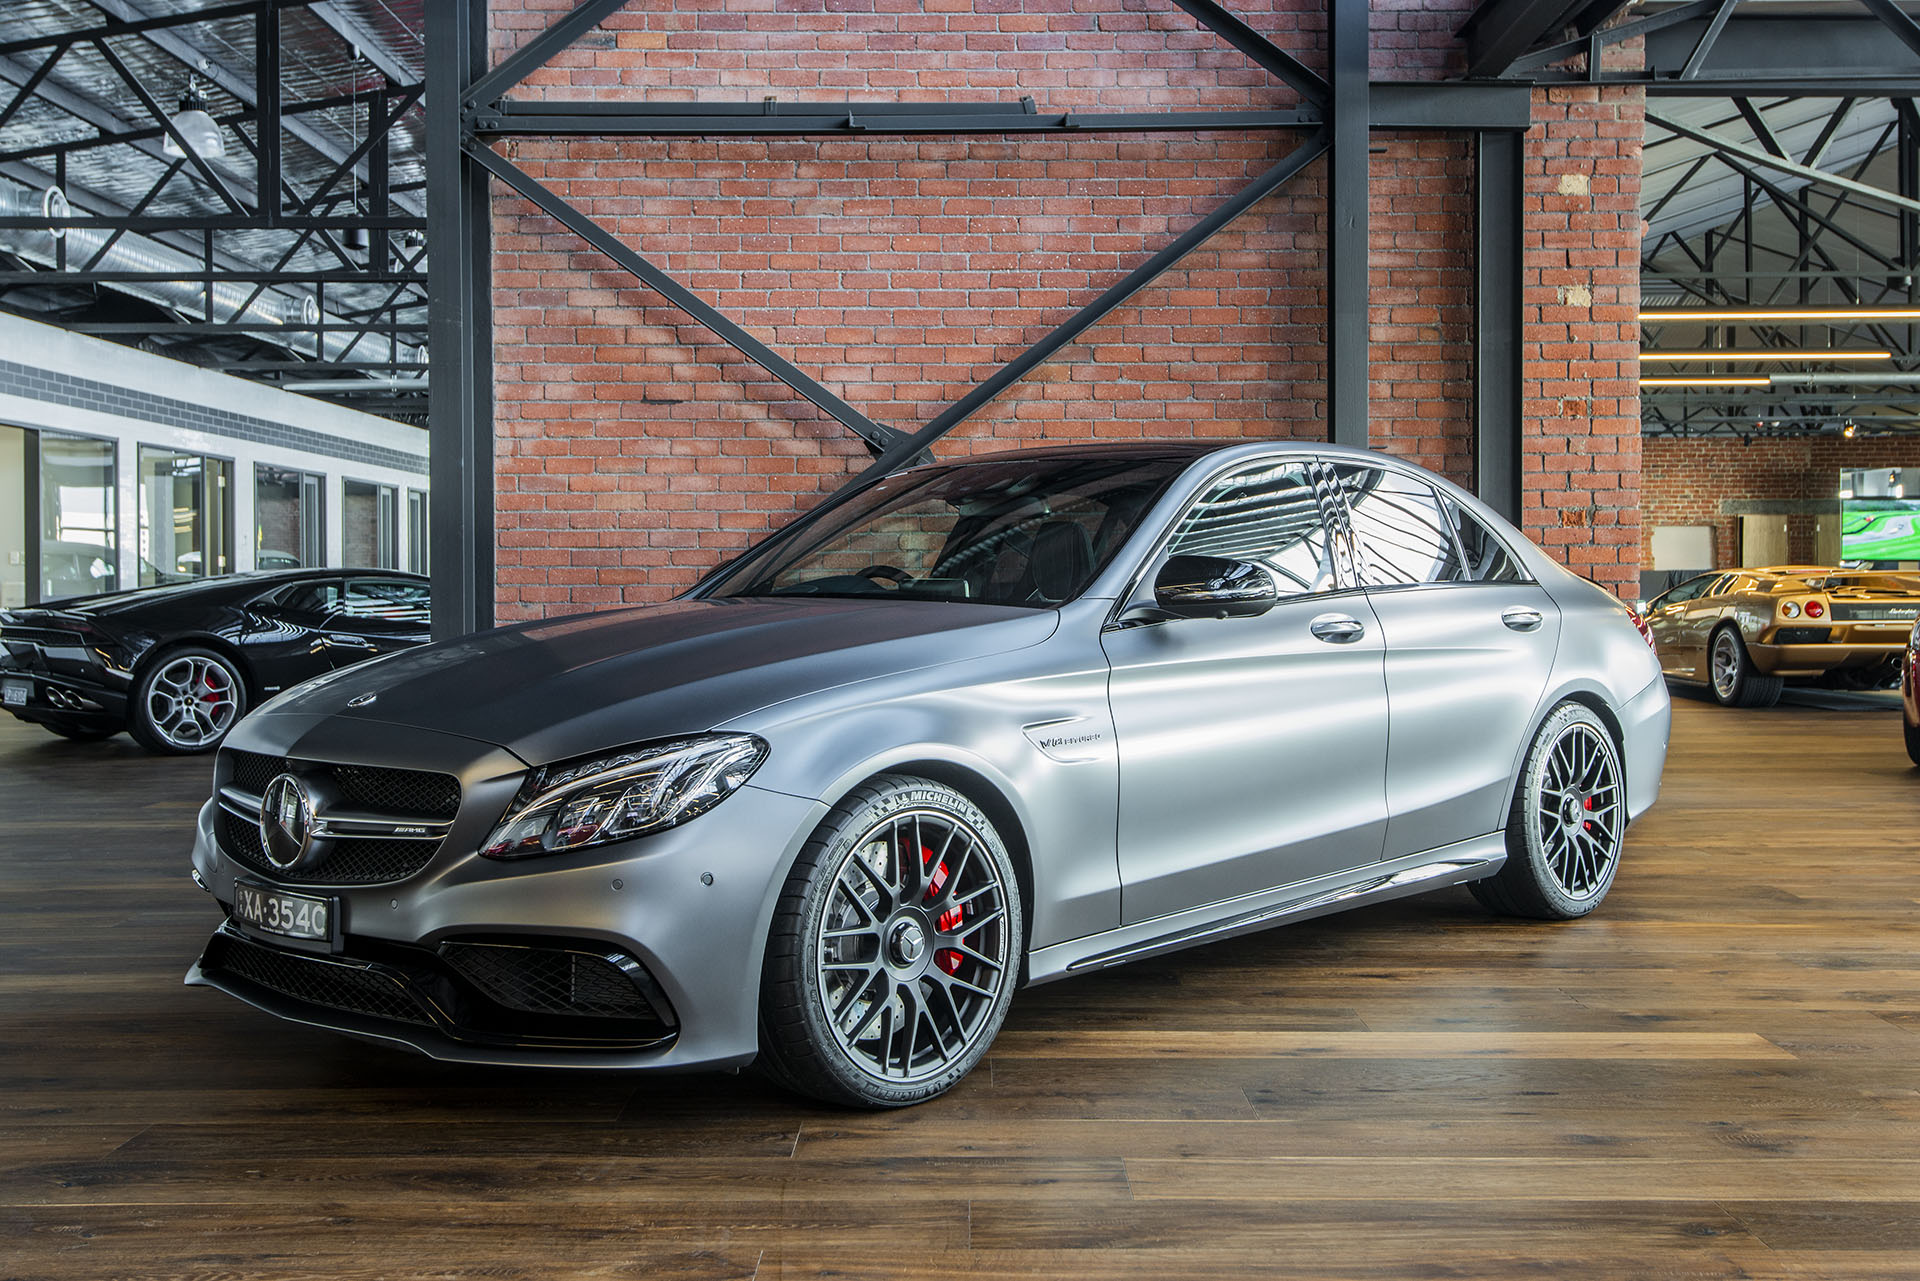 Mercedes Benz Amg >> 2017 Mercedes C63S AMG - Richmonds - Classic and Prestige Cars - Storage and Sales - Adelaide ...